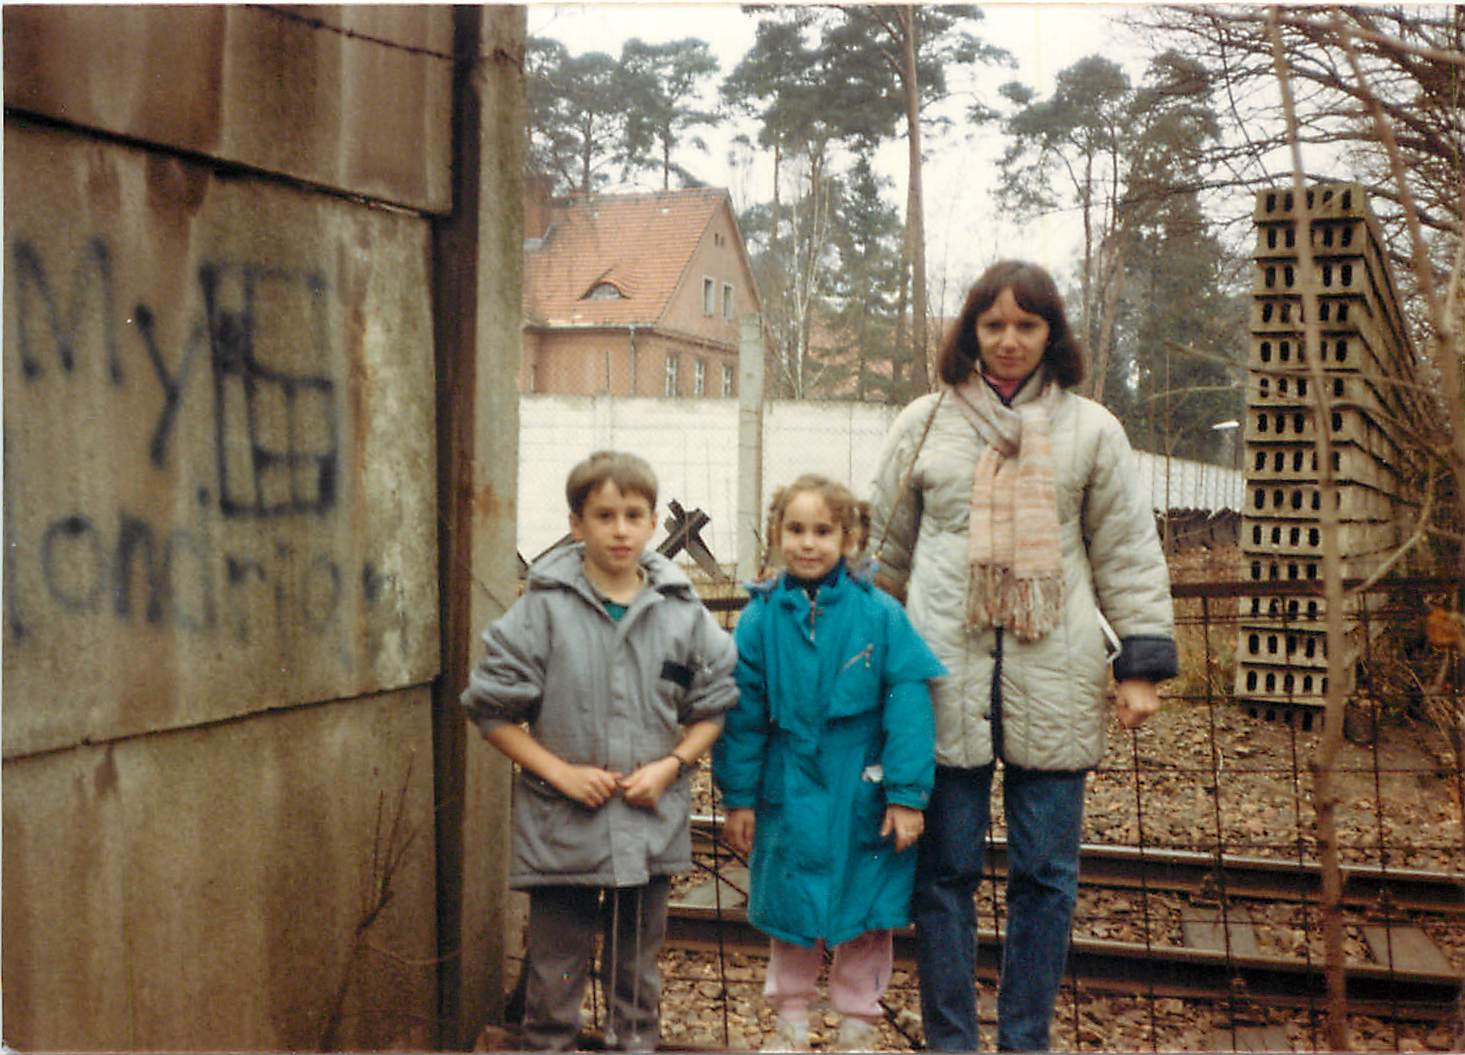 Troy and Karla with mom, Connie, in West Berlin at the Berlin Wall in the late 1980's.